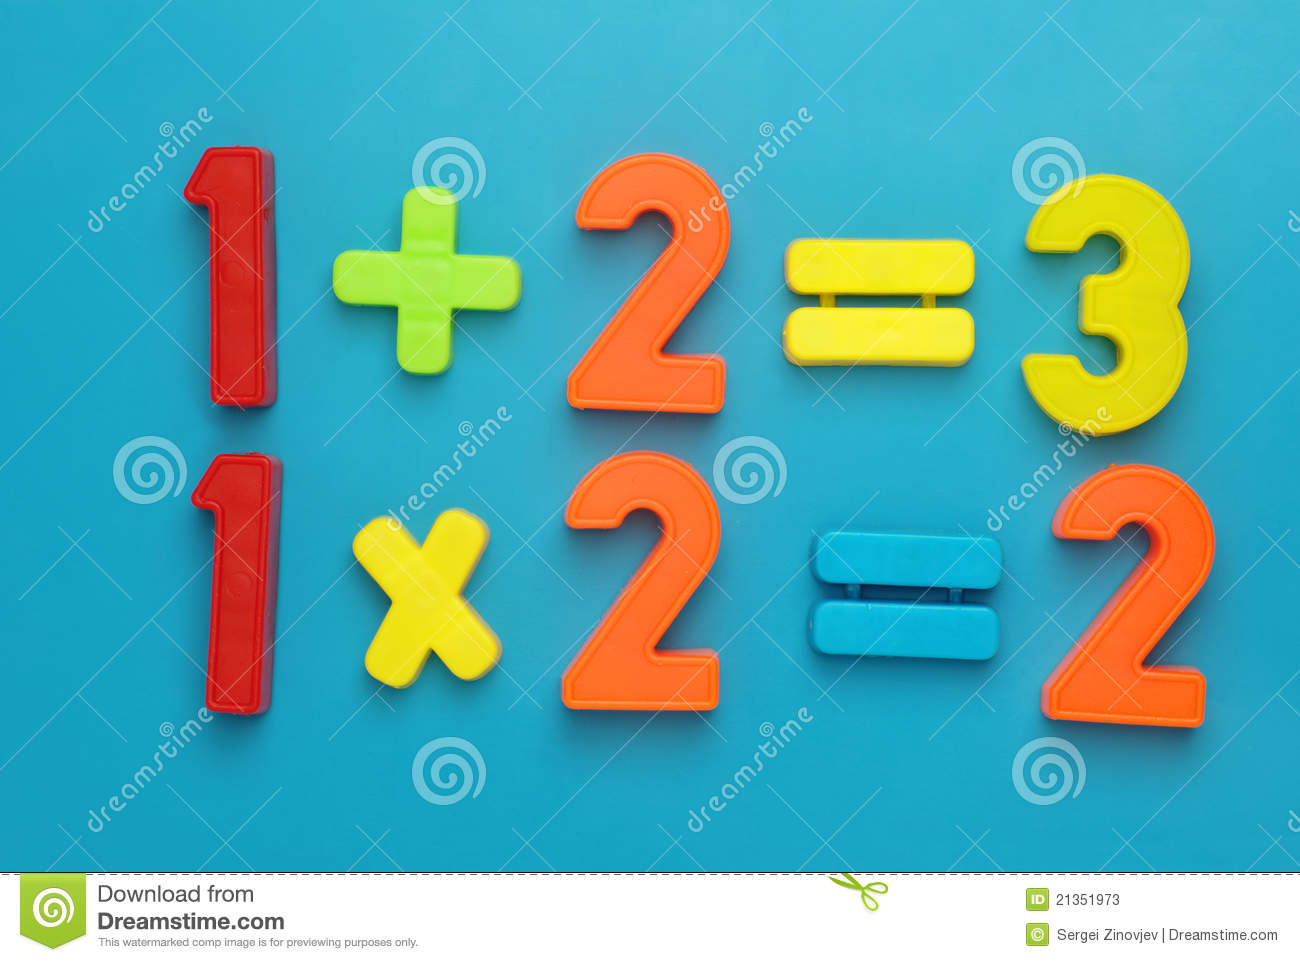 Simple Math With Magetic Numbers. Stock Image - Image of education ...